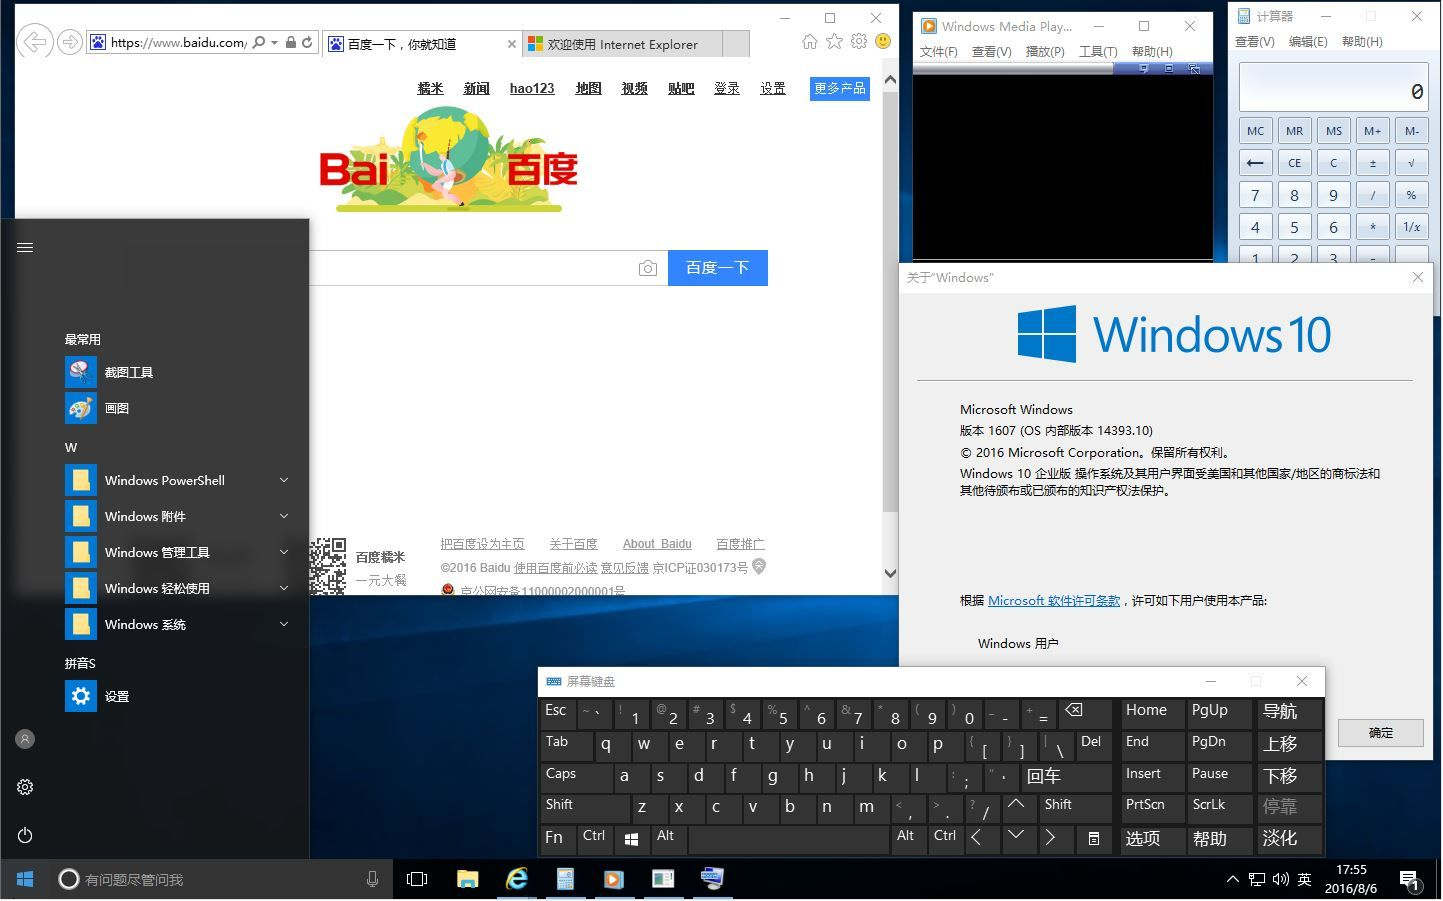 Windows 10 Enterprise 14393.51 x86-x64 zh-CN LITE 04